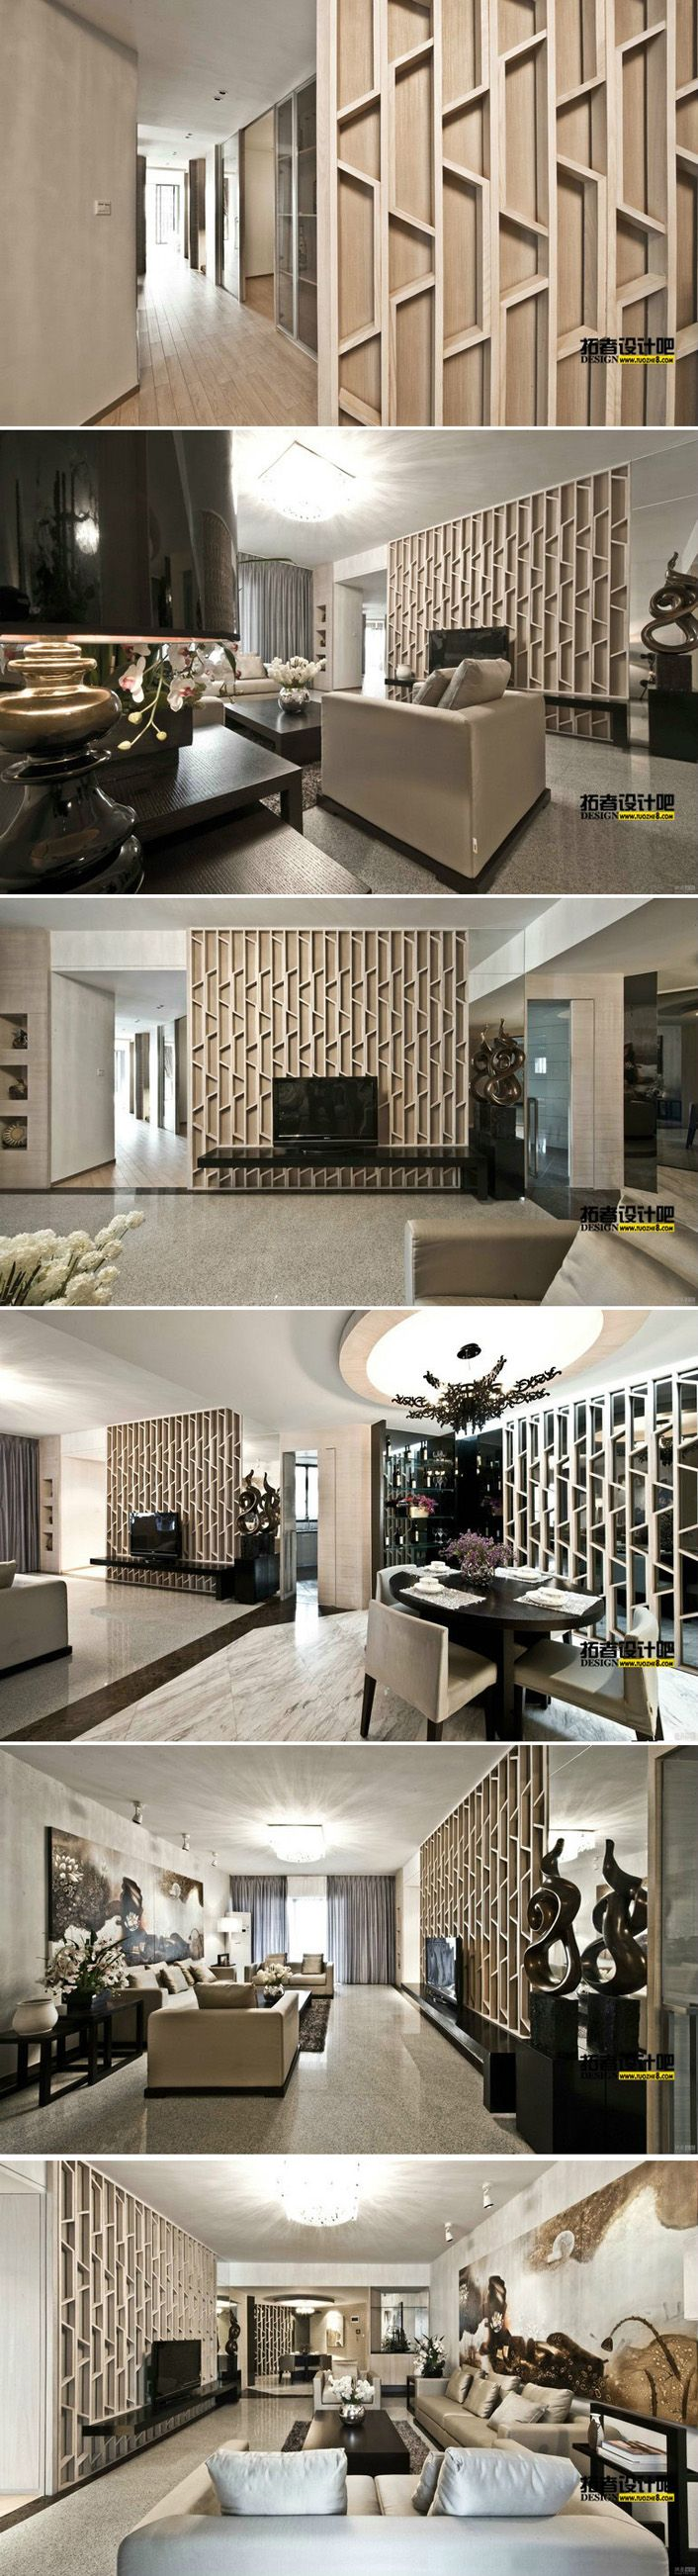 Moderncontemporaryinteriordesign the room divider or feature